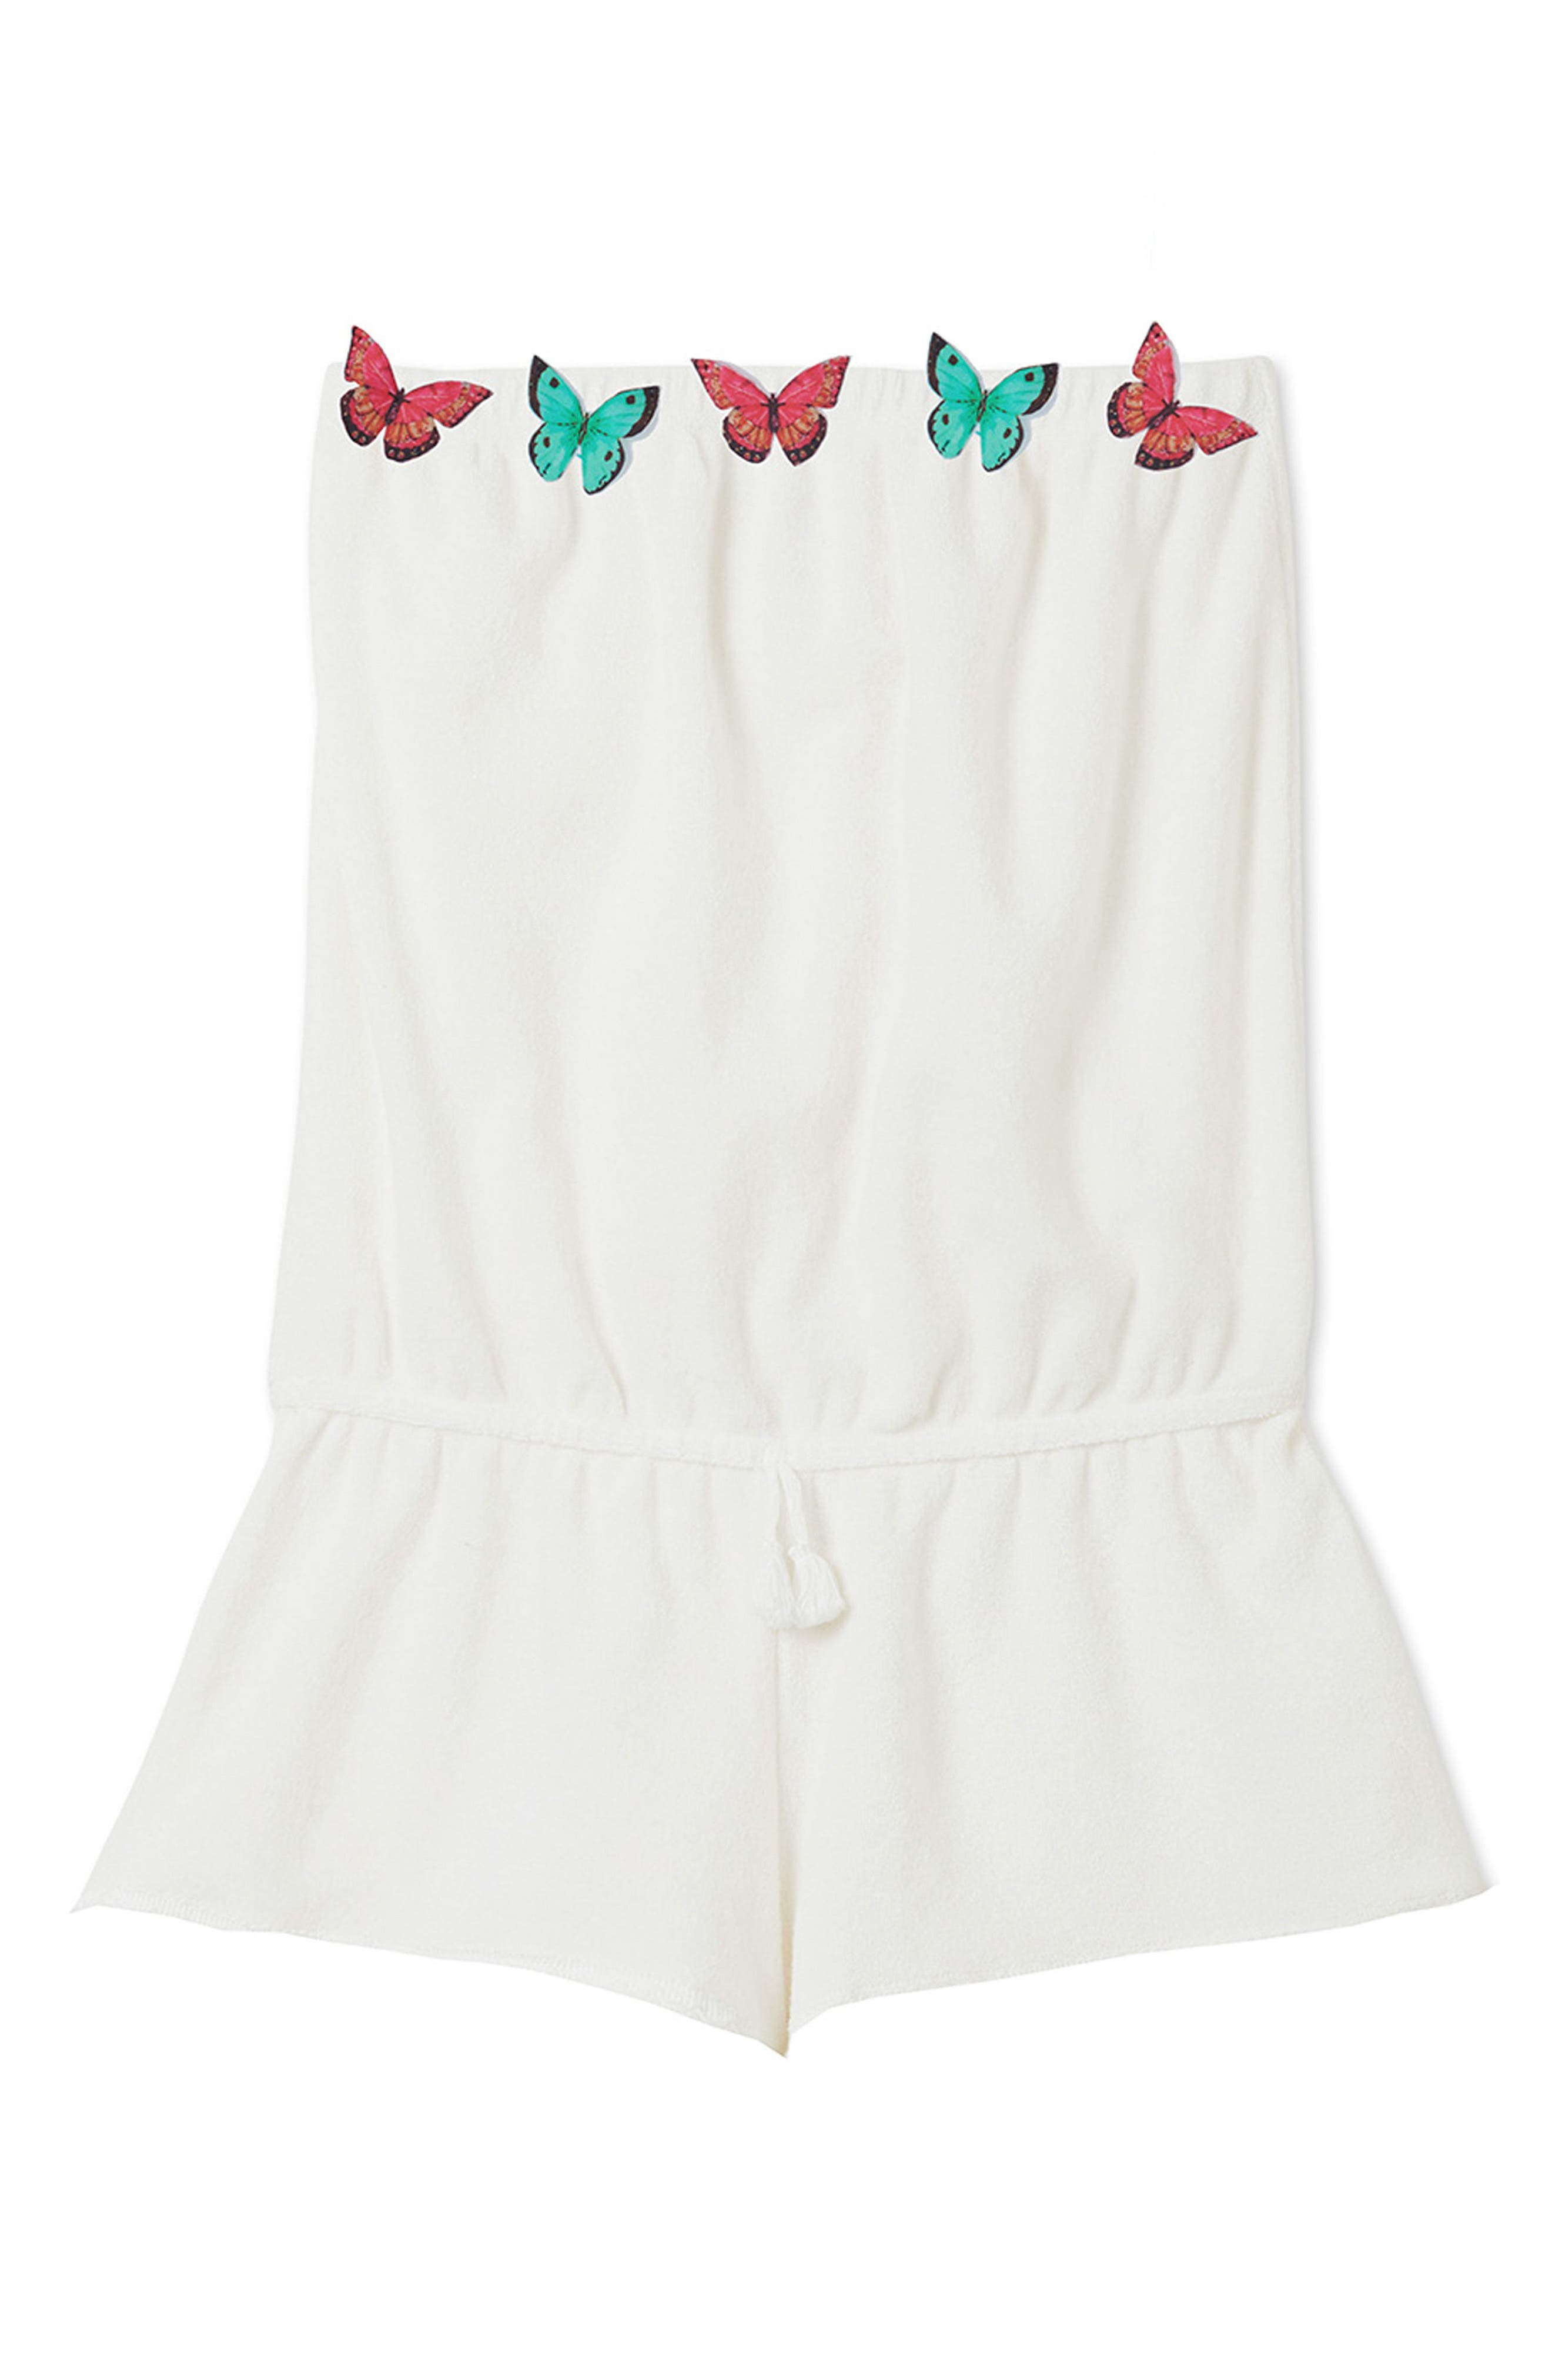 Butterfly Strapless Cover-Up Romper,                             Main thumbnail 1, color,                             White